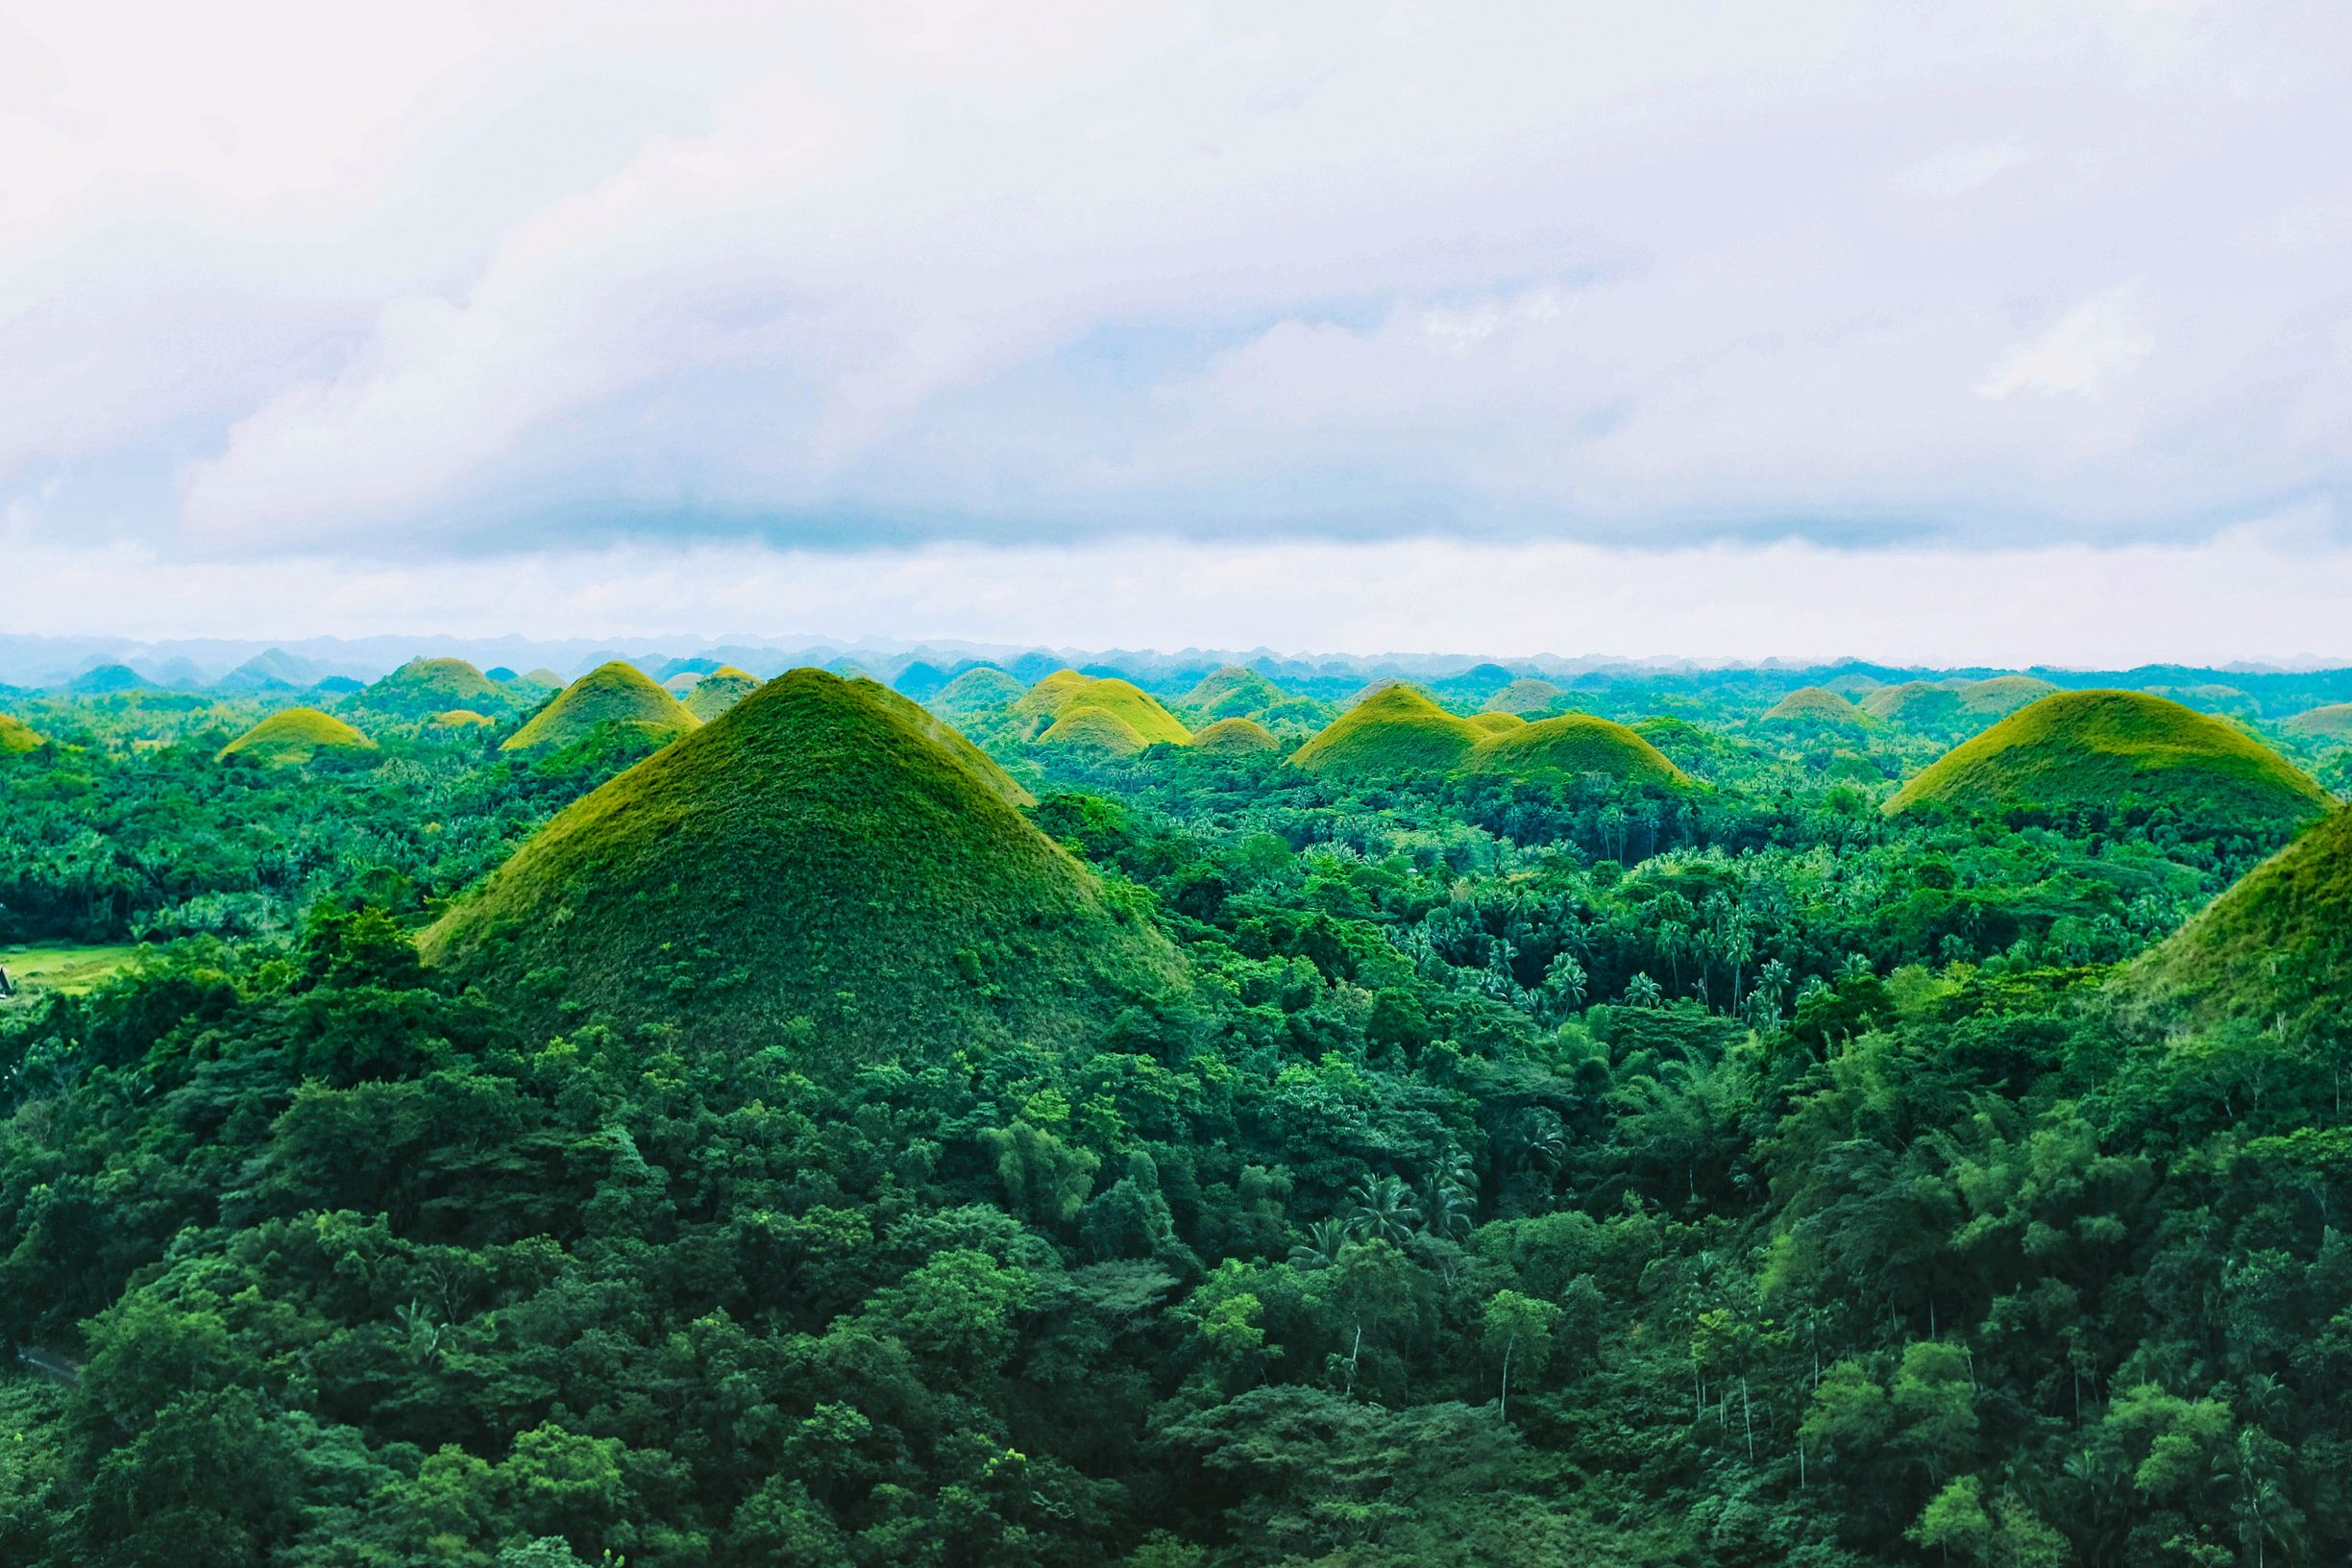 Numerous green hills rising above green forests in Bohol, Philippines